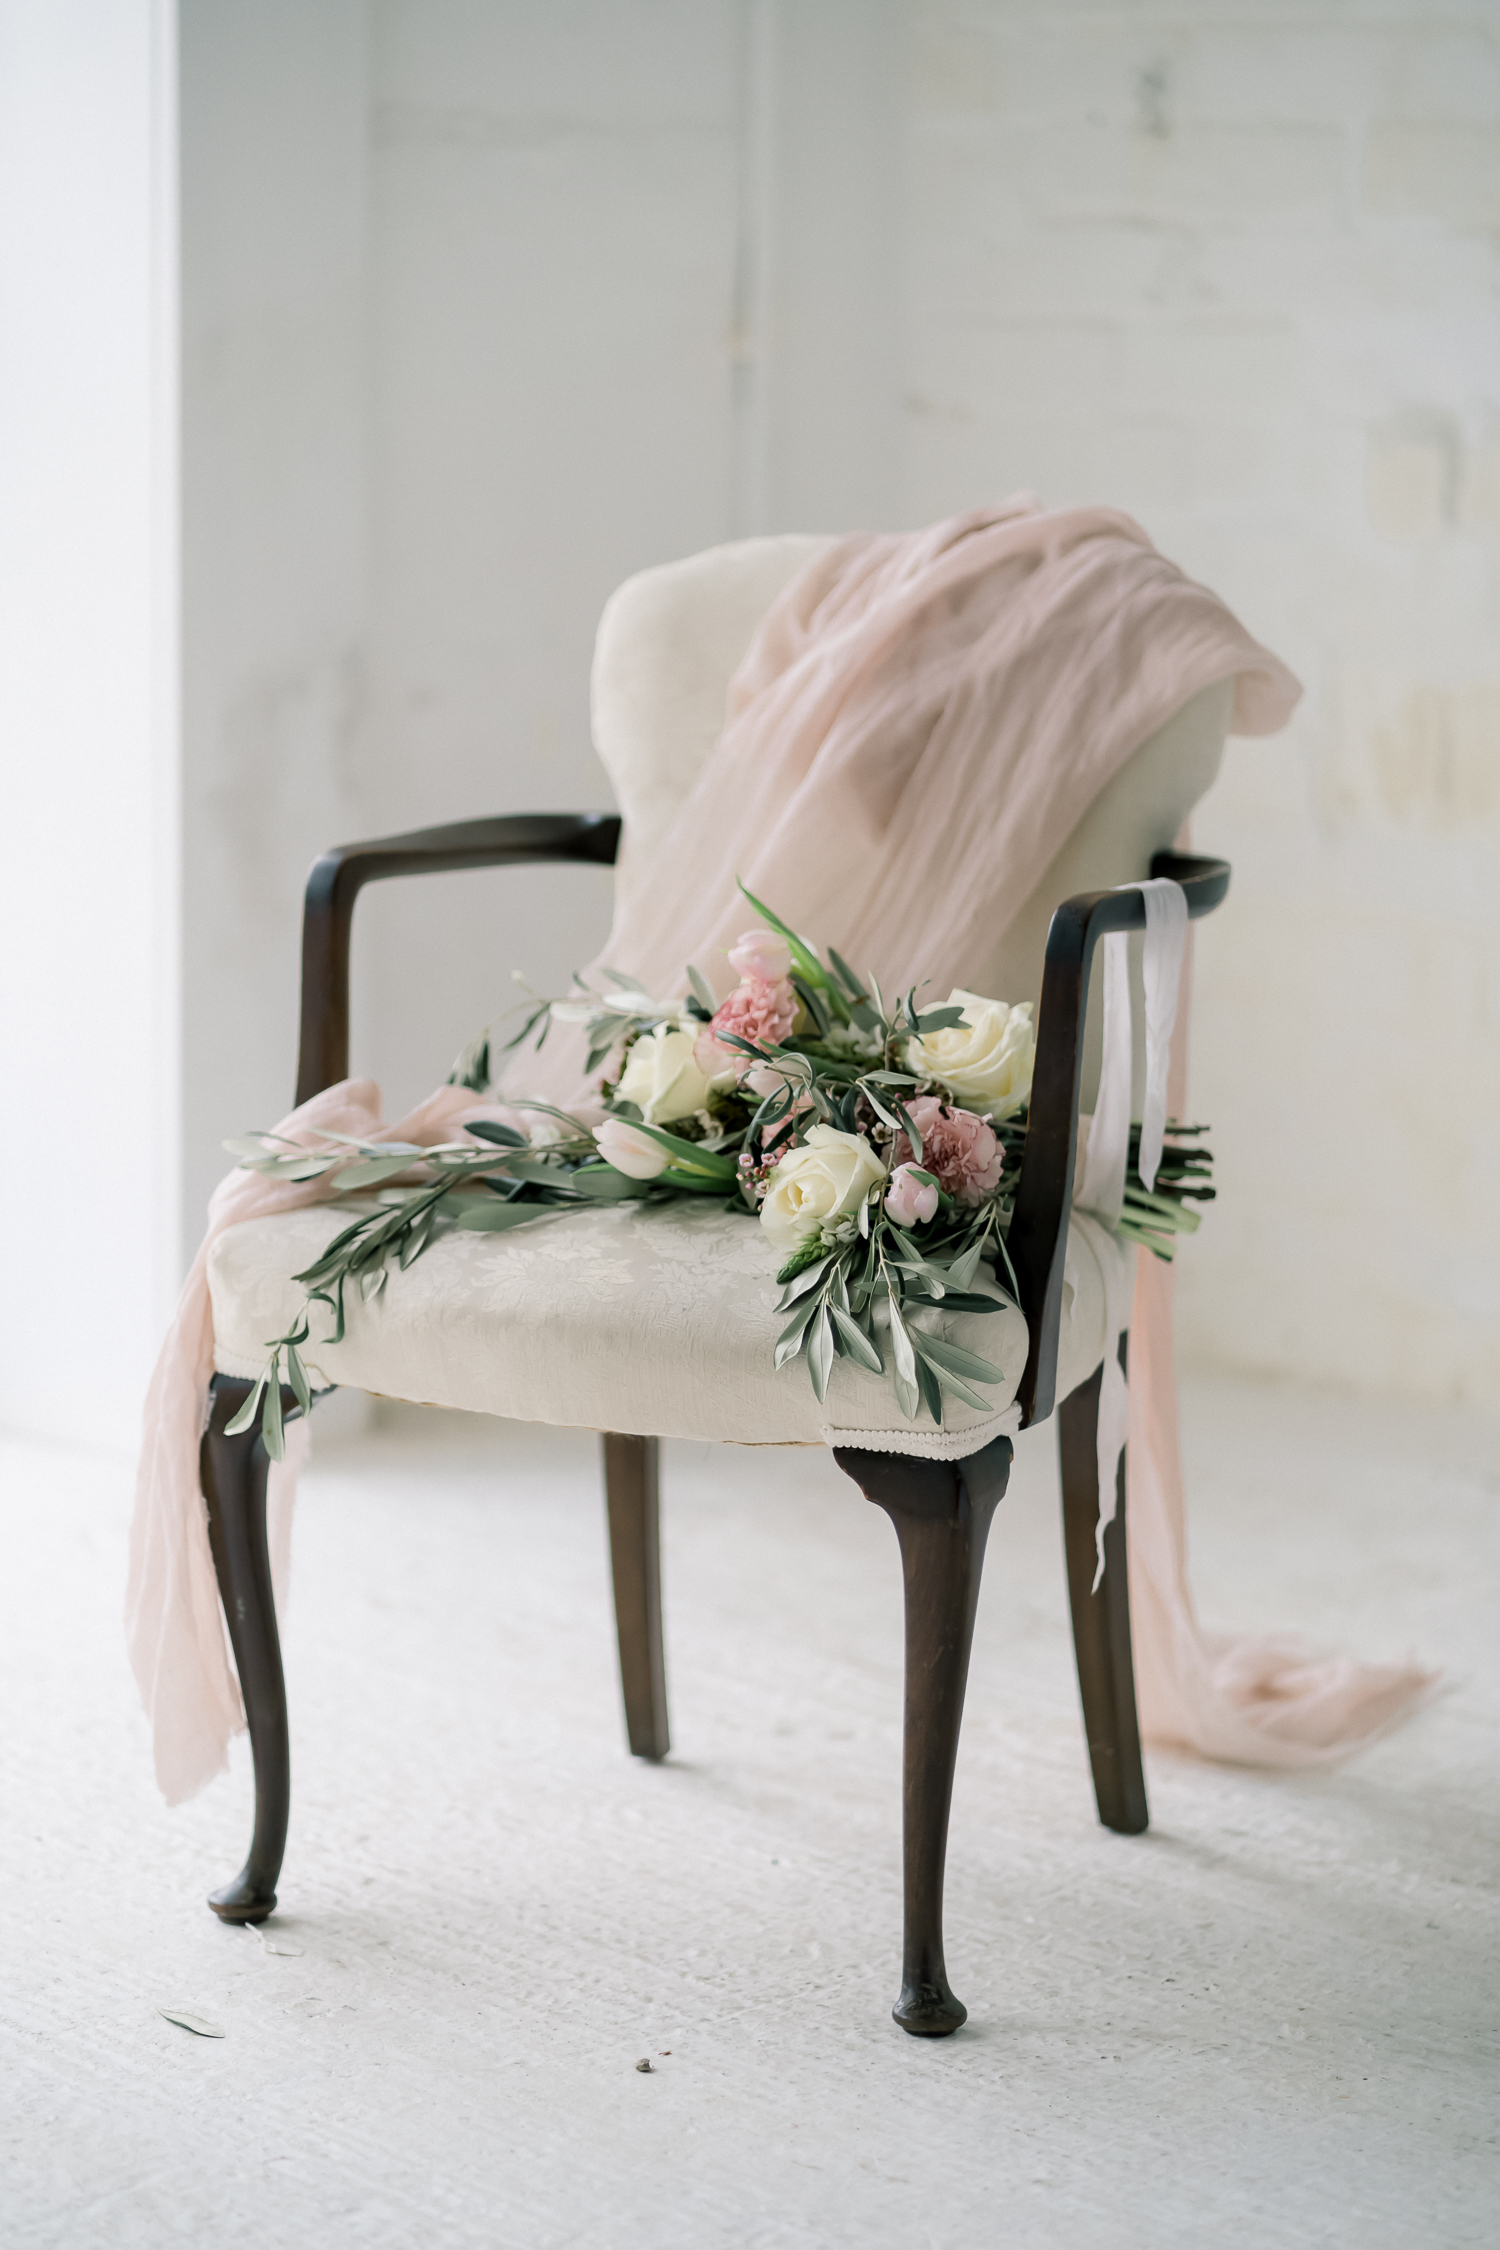 Whimsical Winter Bridal Inspiration Featuring a Blush Palette and Equally Soft Textiles for a Feminine Aesthetic